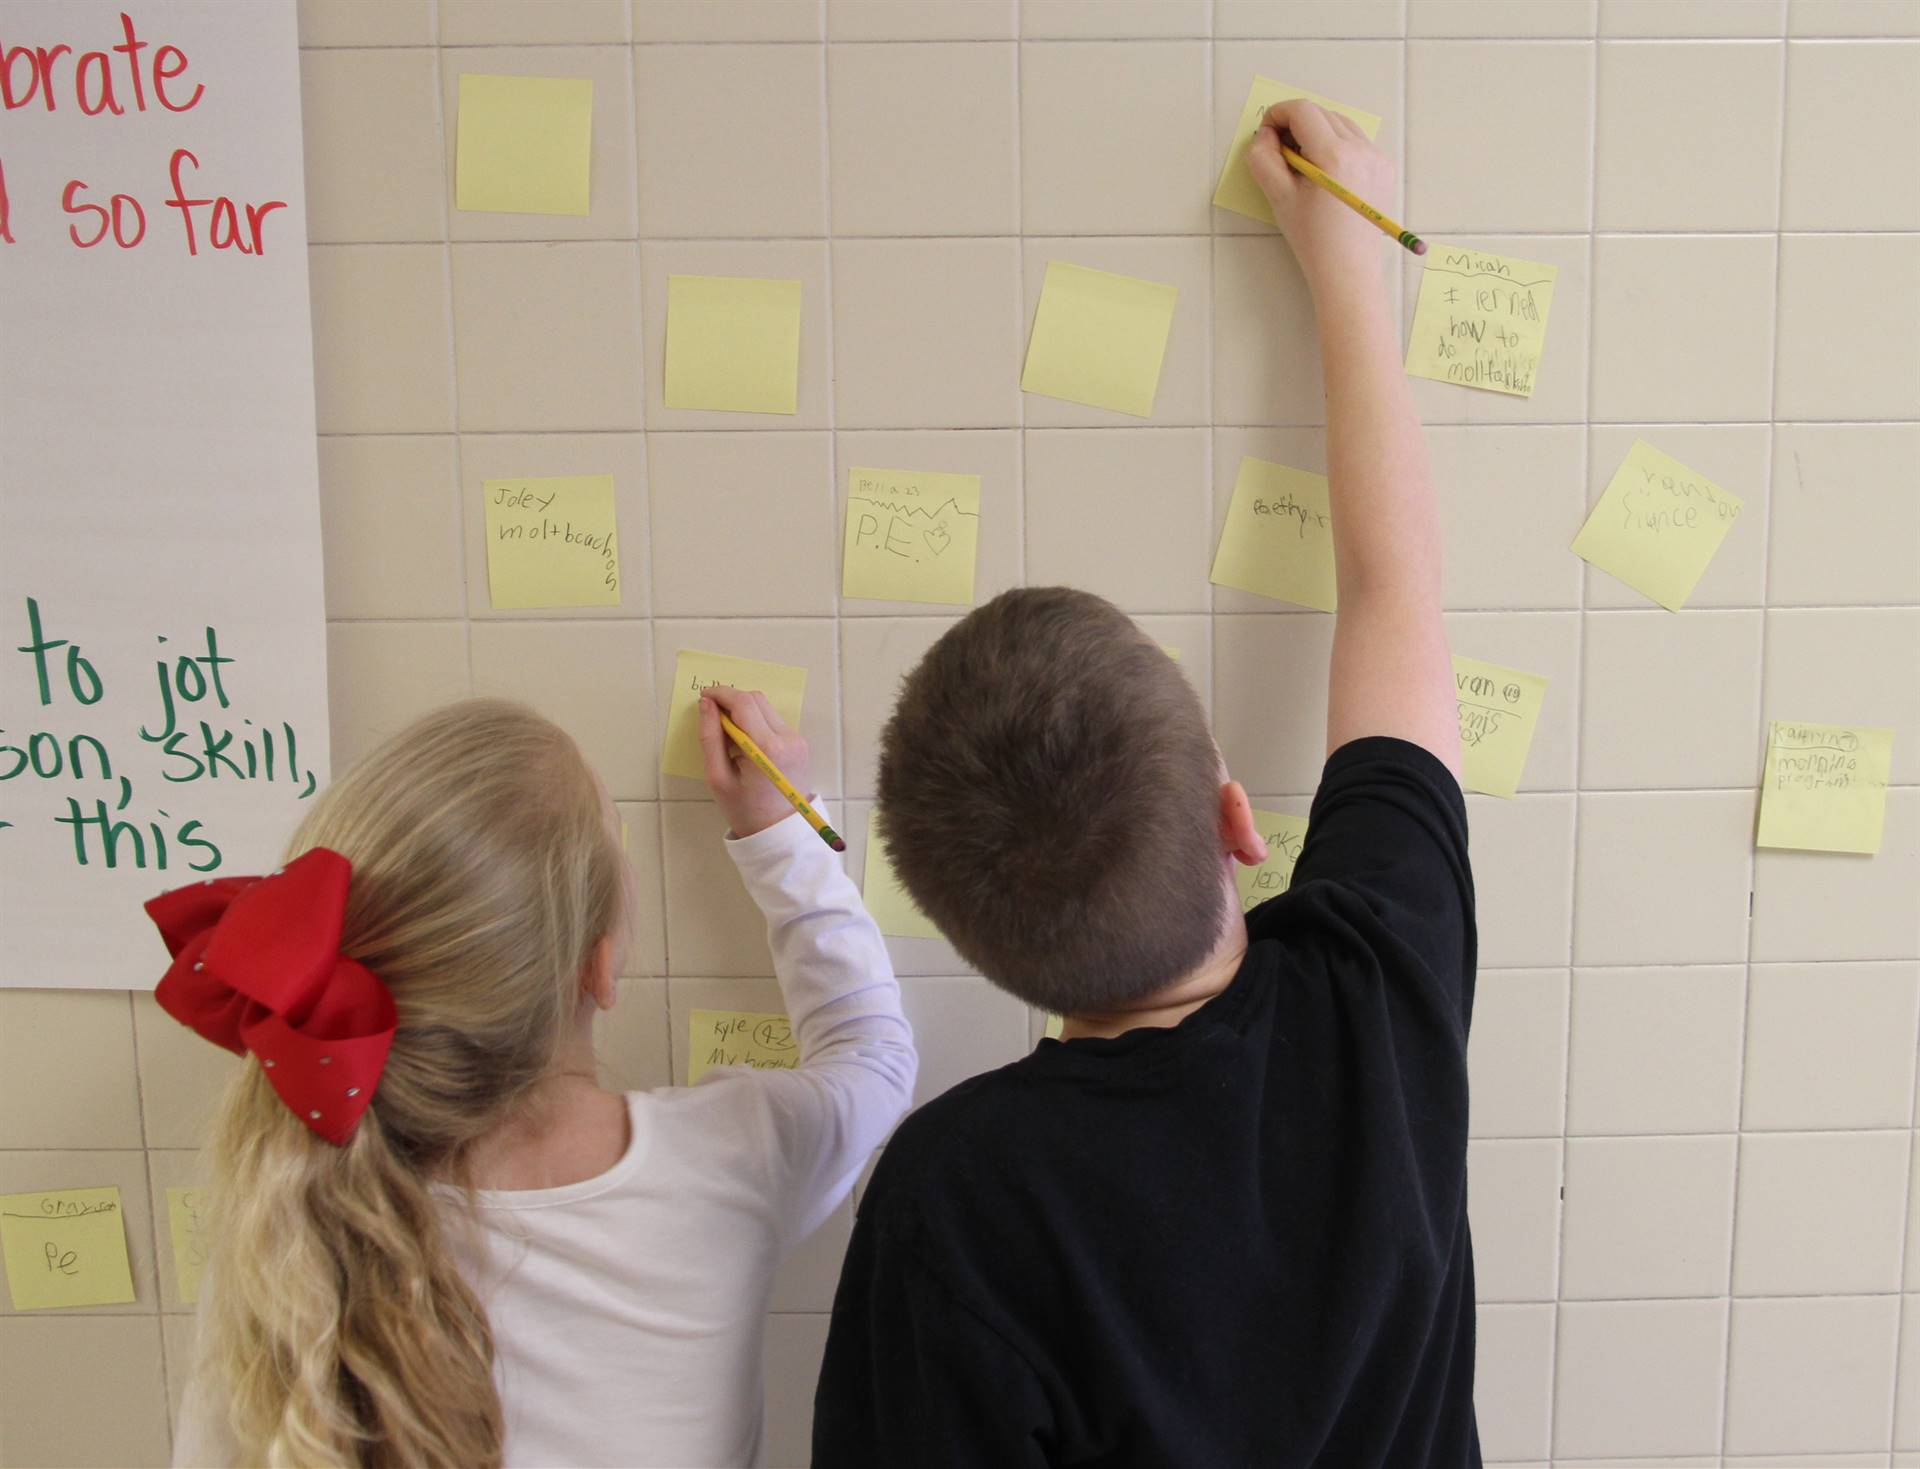 two students writing messages